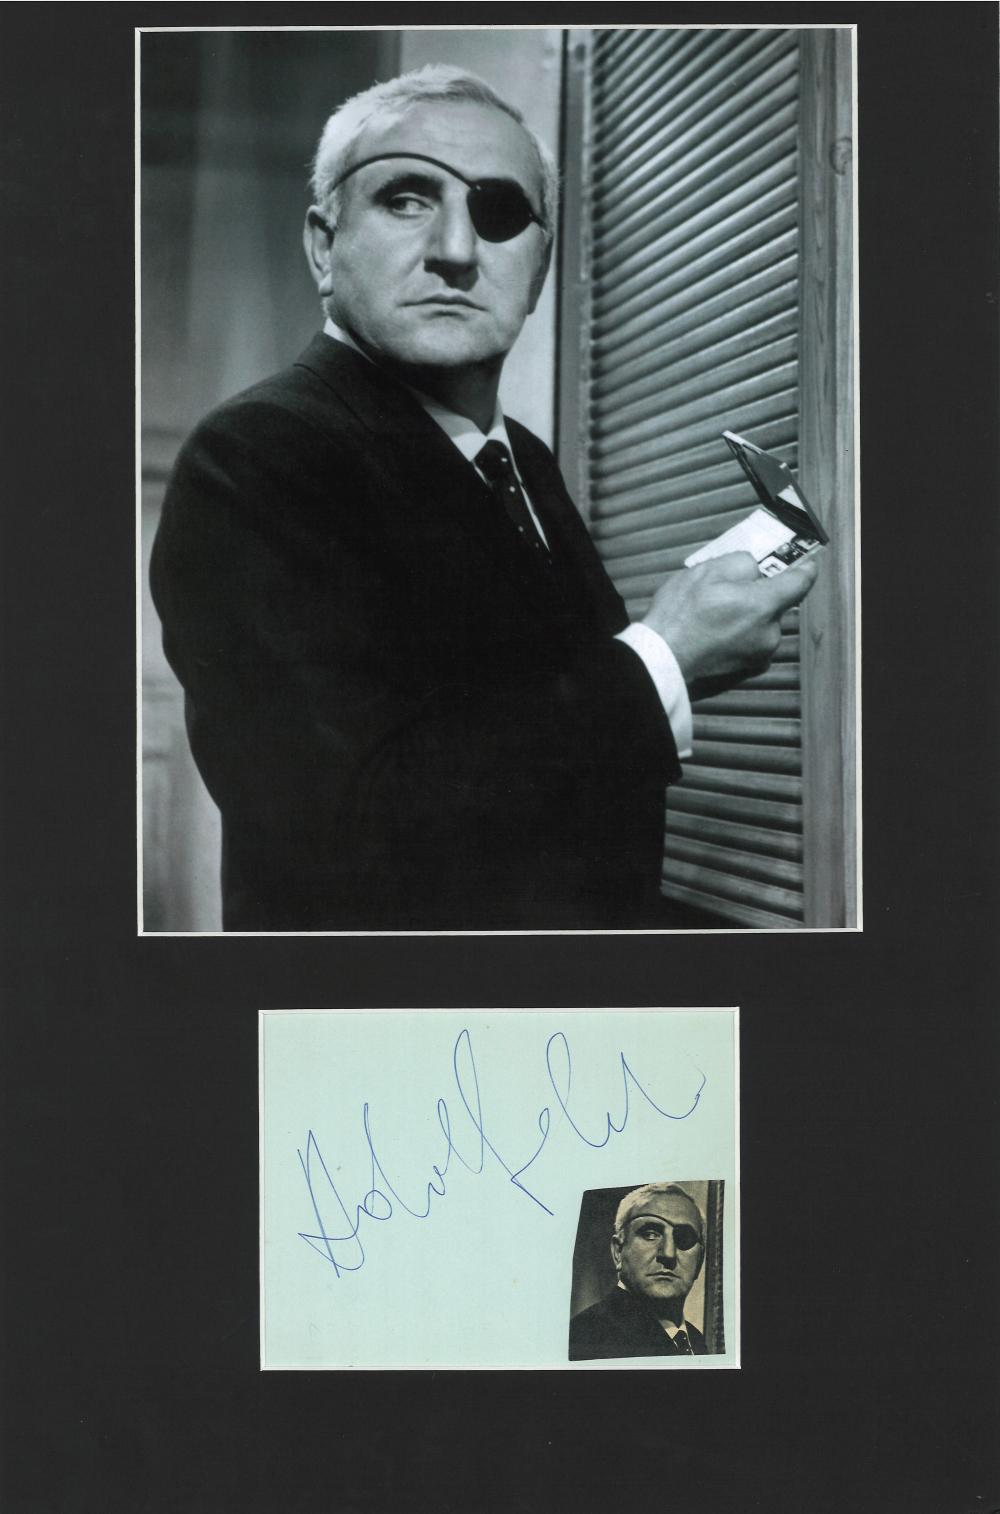 Adolfo Celi signature piece, mounted below b/w photo to approx size 16x12. Italian actor, best known